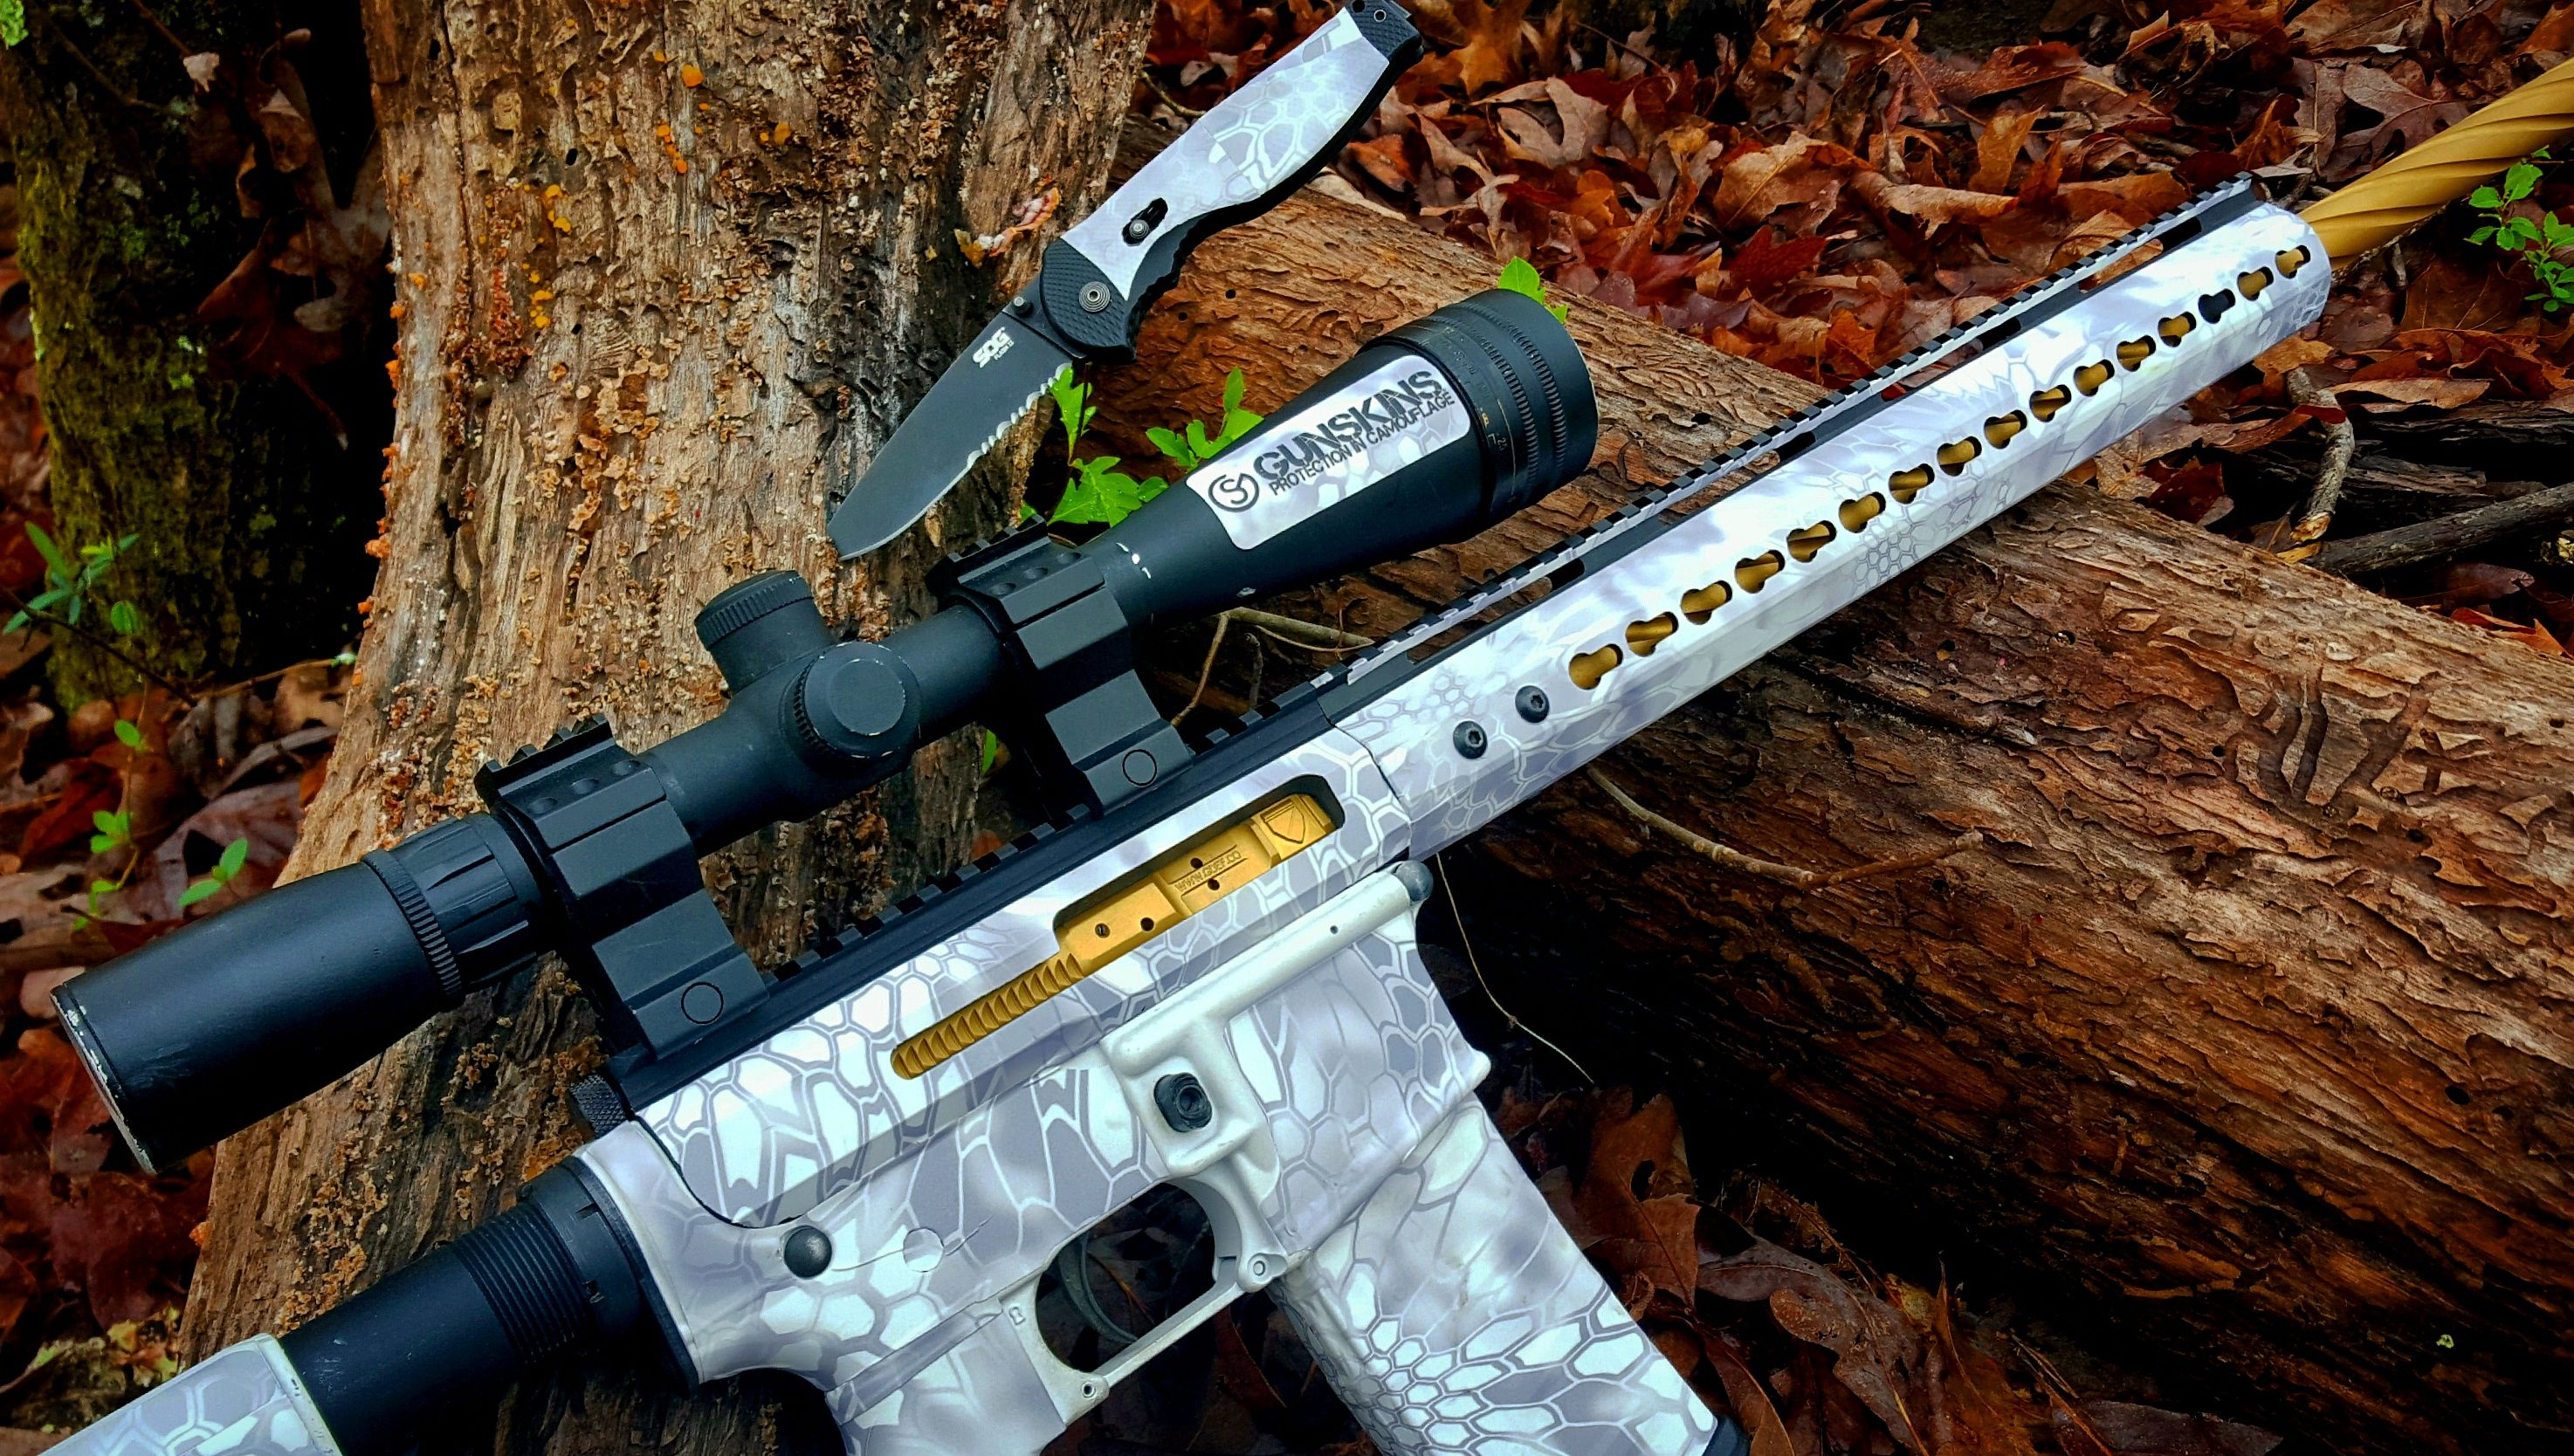 Pin by Cullen Swanson on AR-15's | M4 carbine, Picatinny